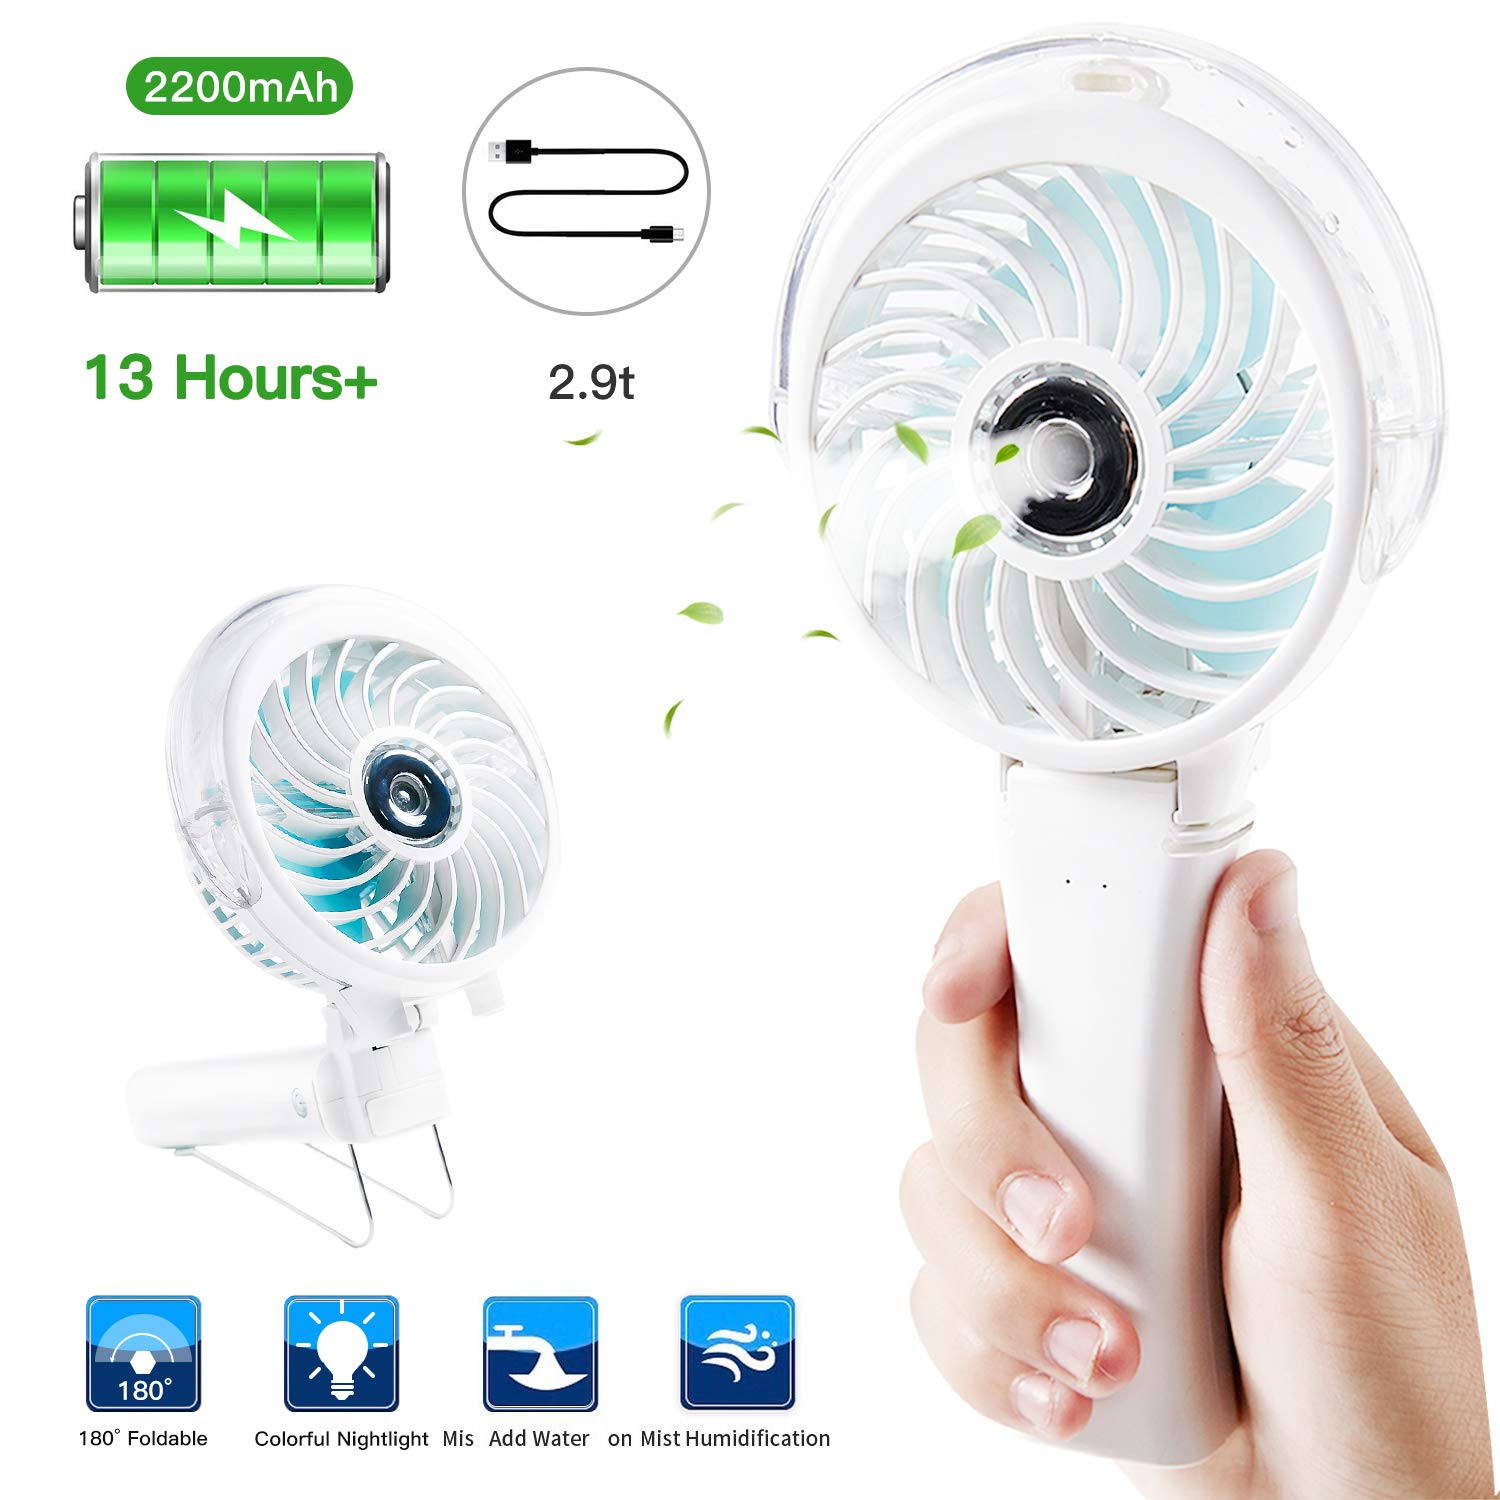 Handheld Portable Humidifier Rechargeable Operated USB